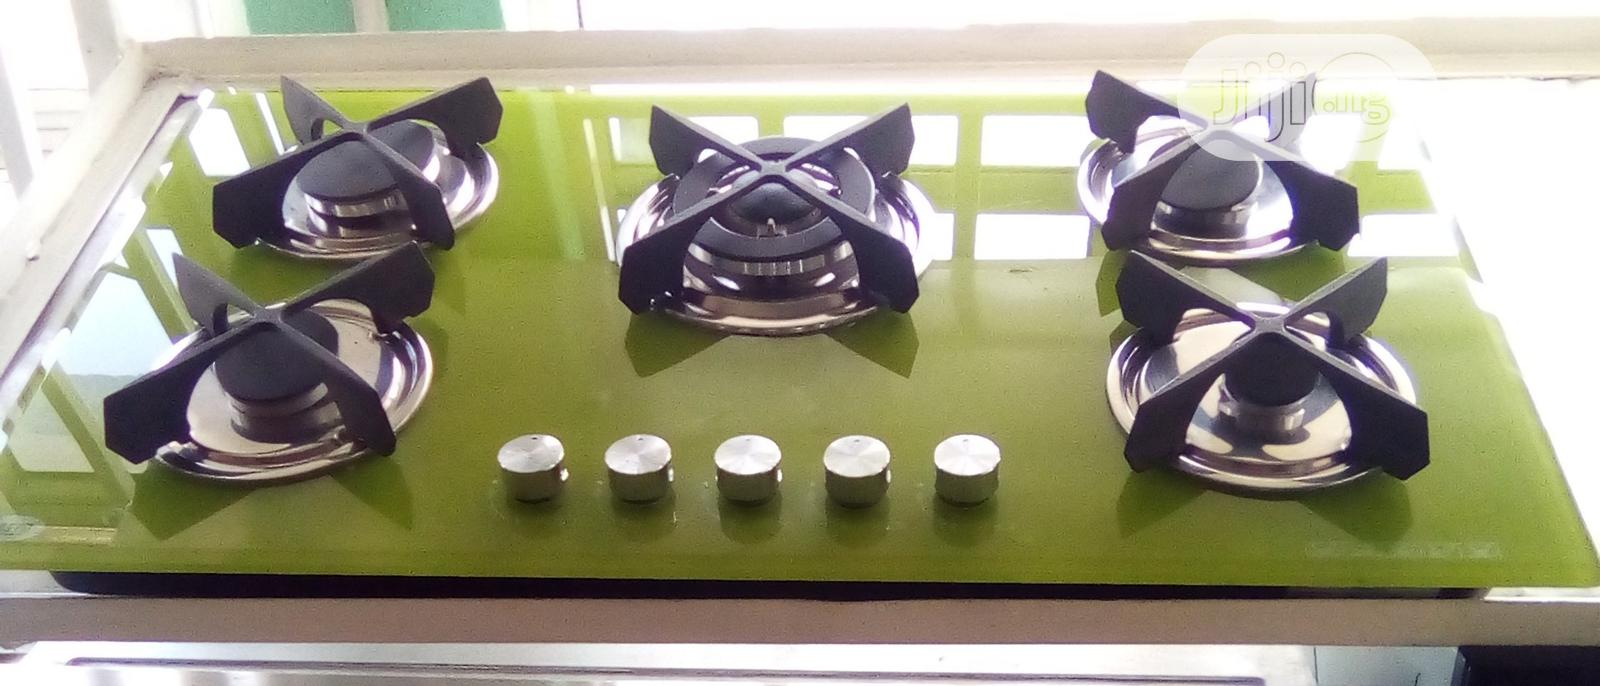 Gas Hob With 5 Burners, All Gas